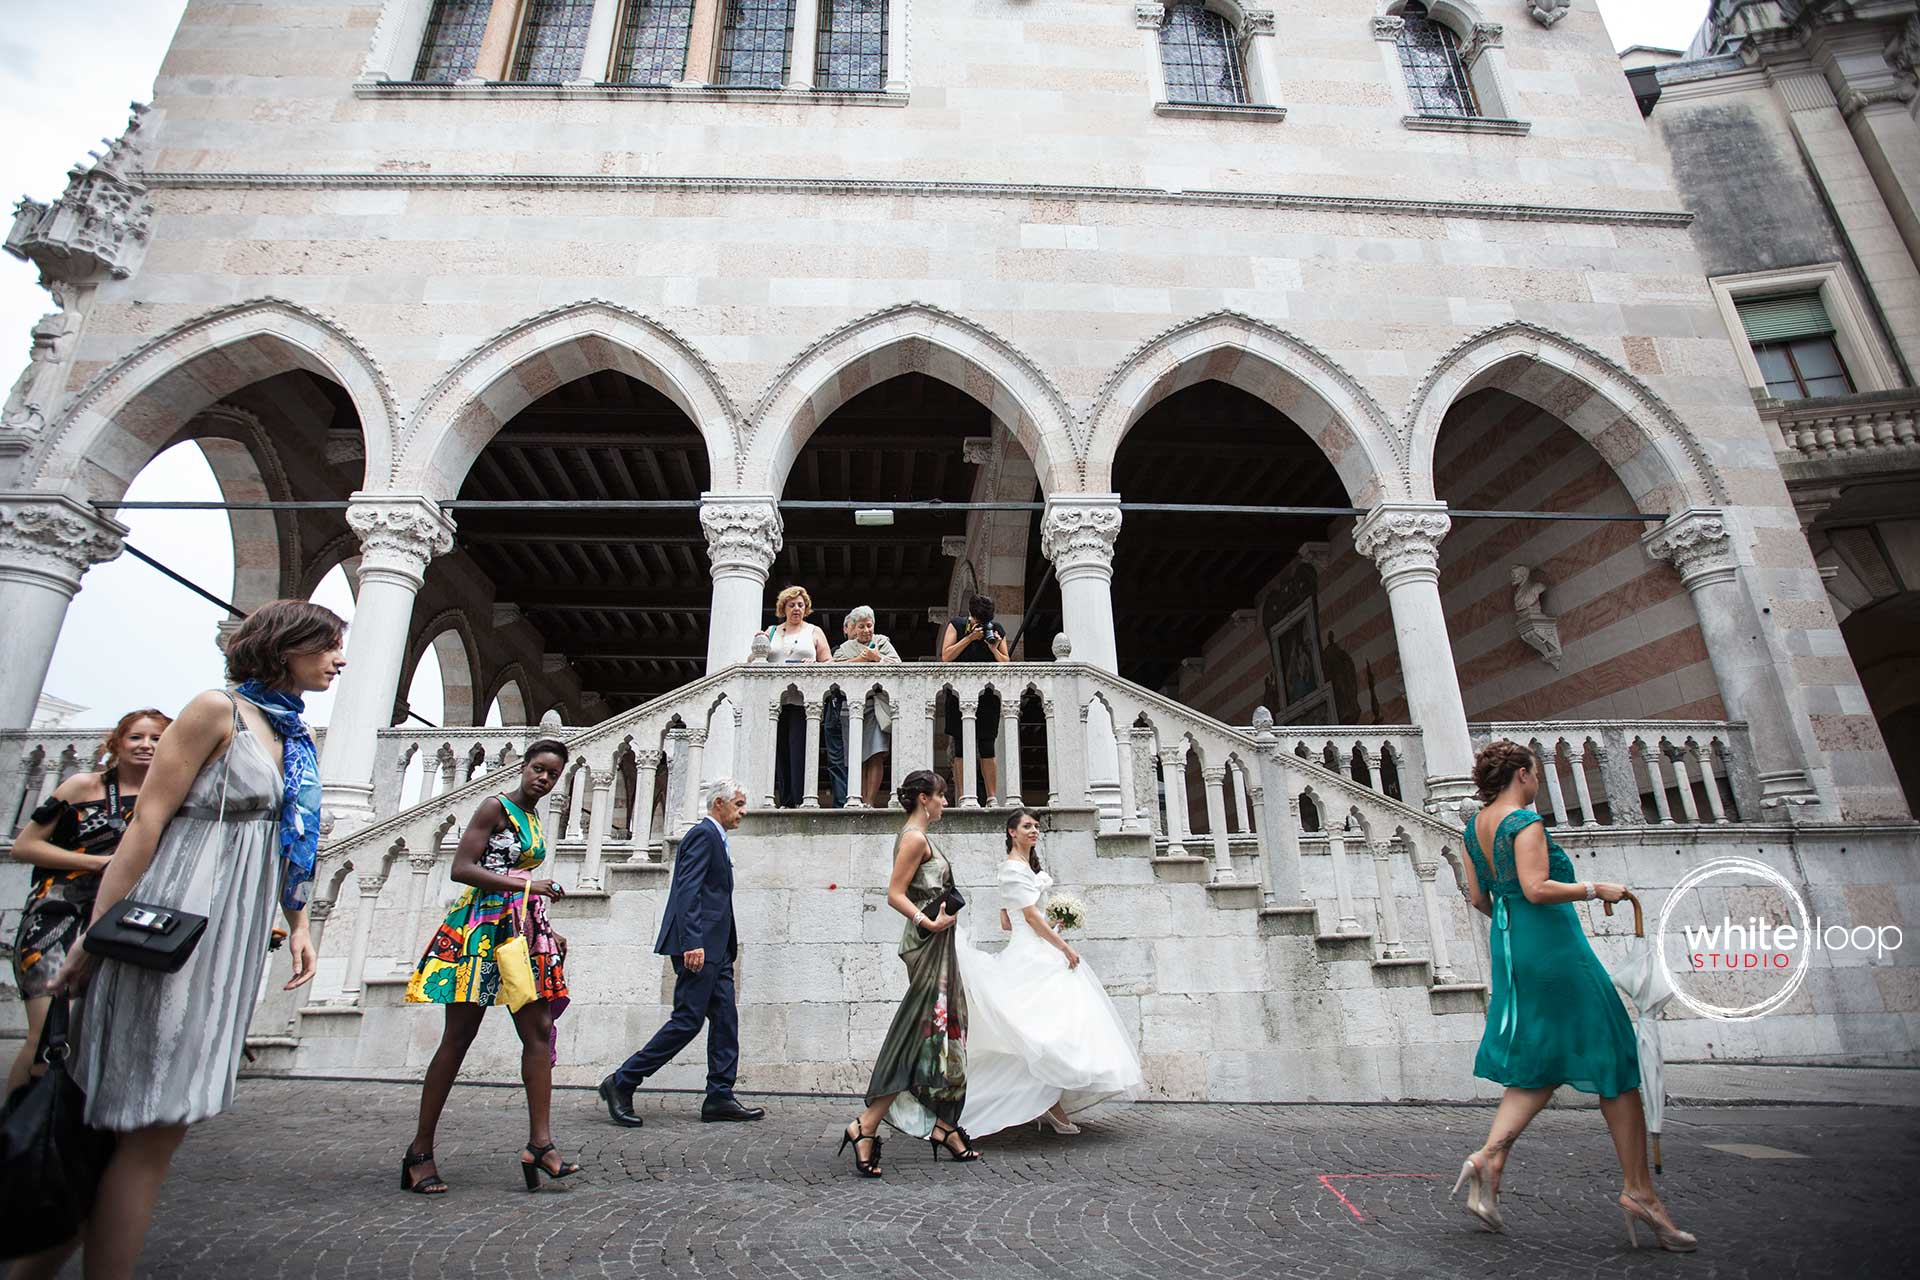 Some guests are walking to ceremony, carrying the bride along the streets of the historical centre of Udine, a small beautiful town in the North of Italy